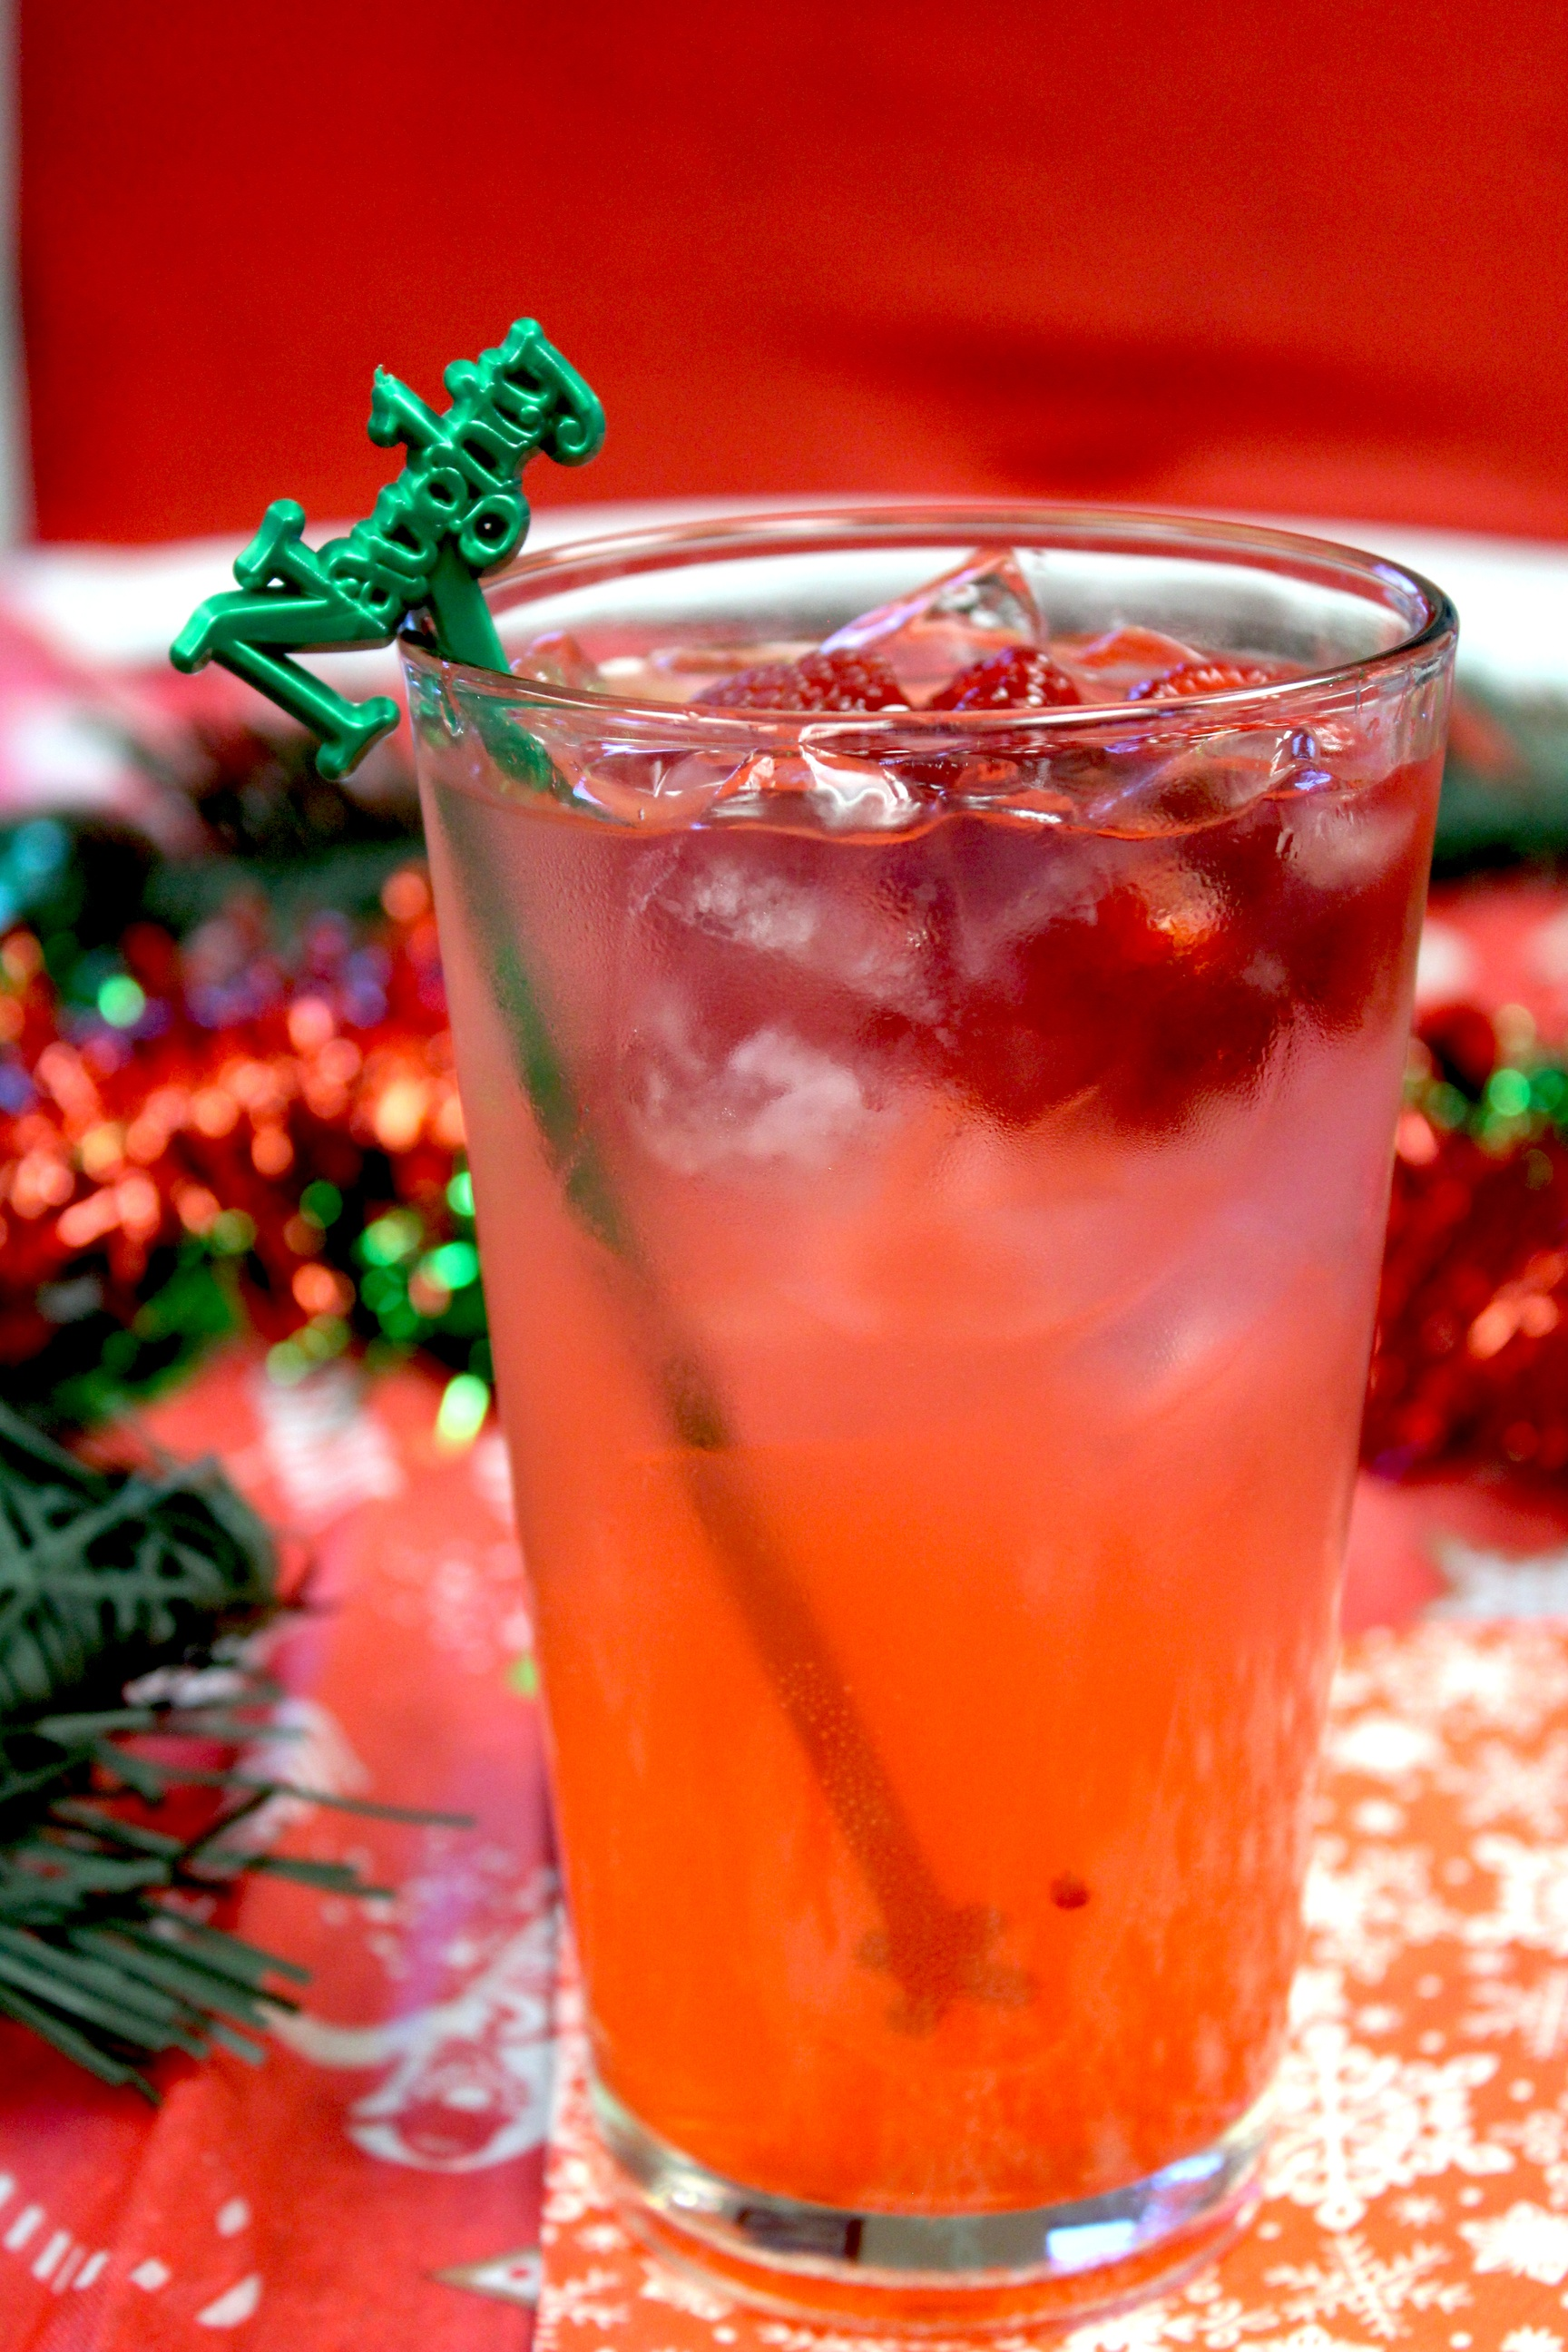 Festive Royer Swizzle Sticks Bring Holiday Cheer!